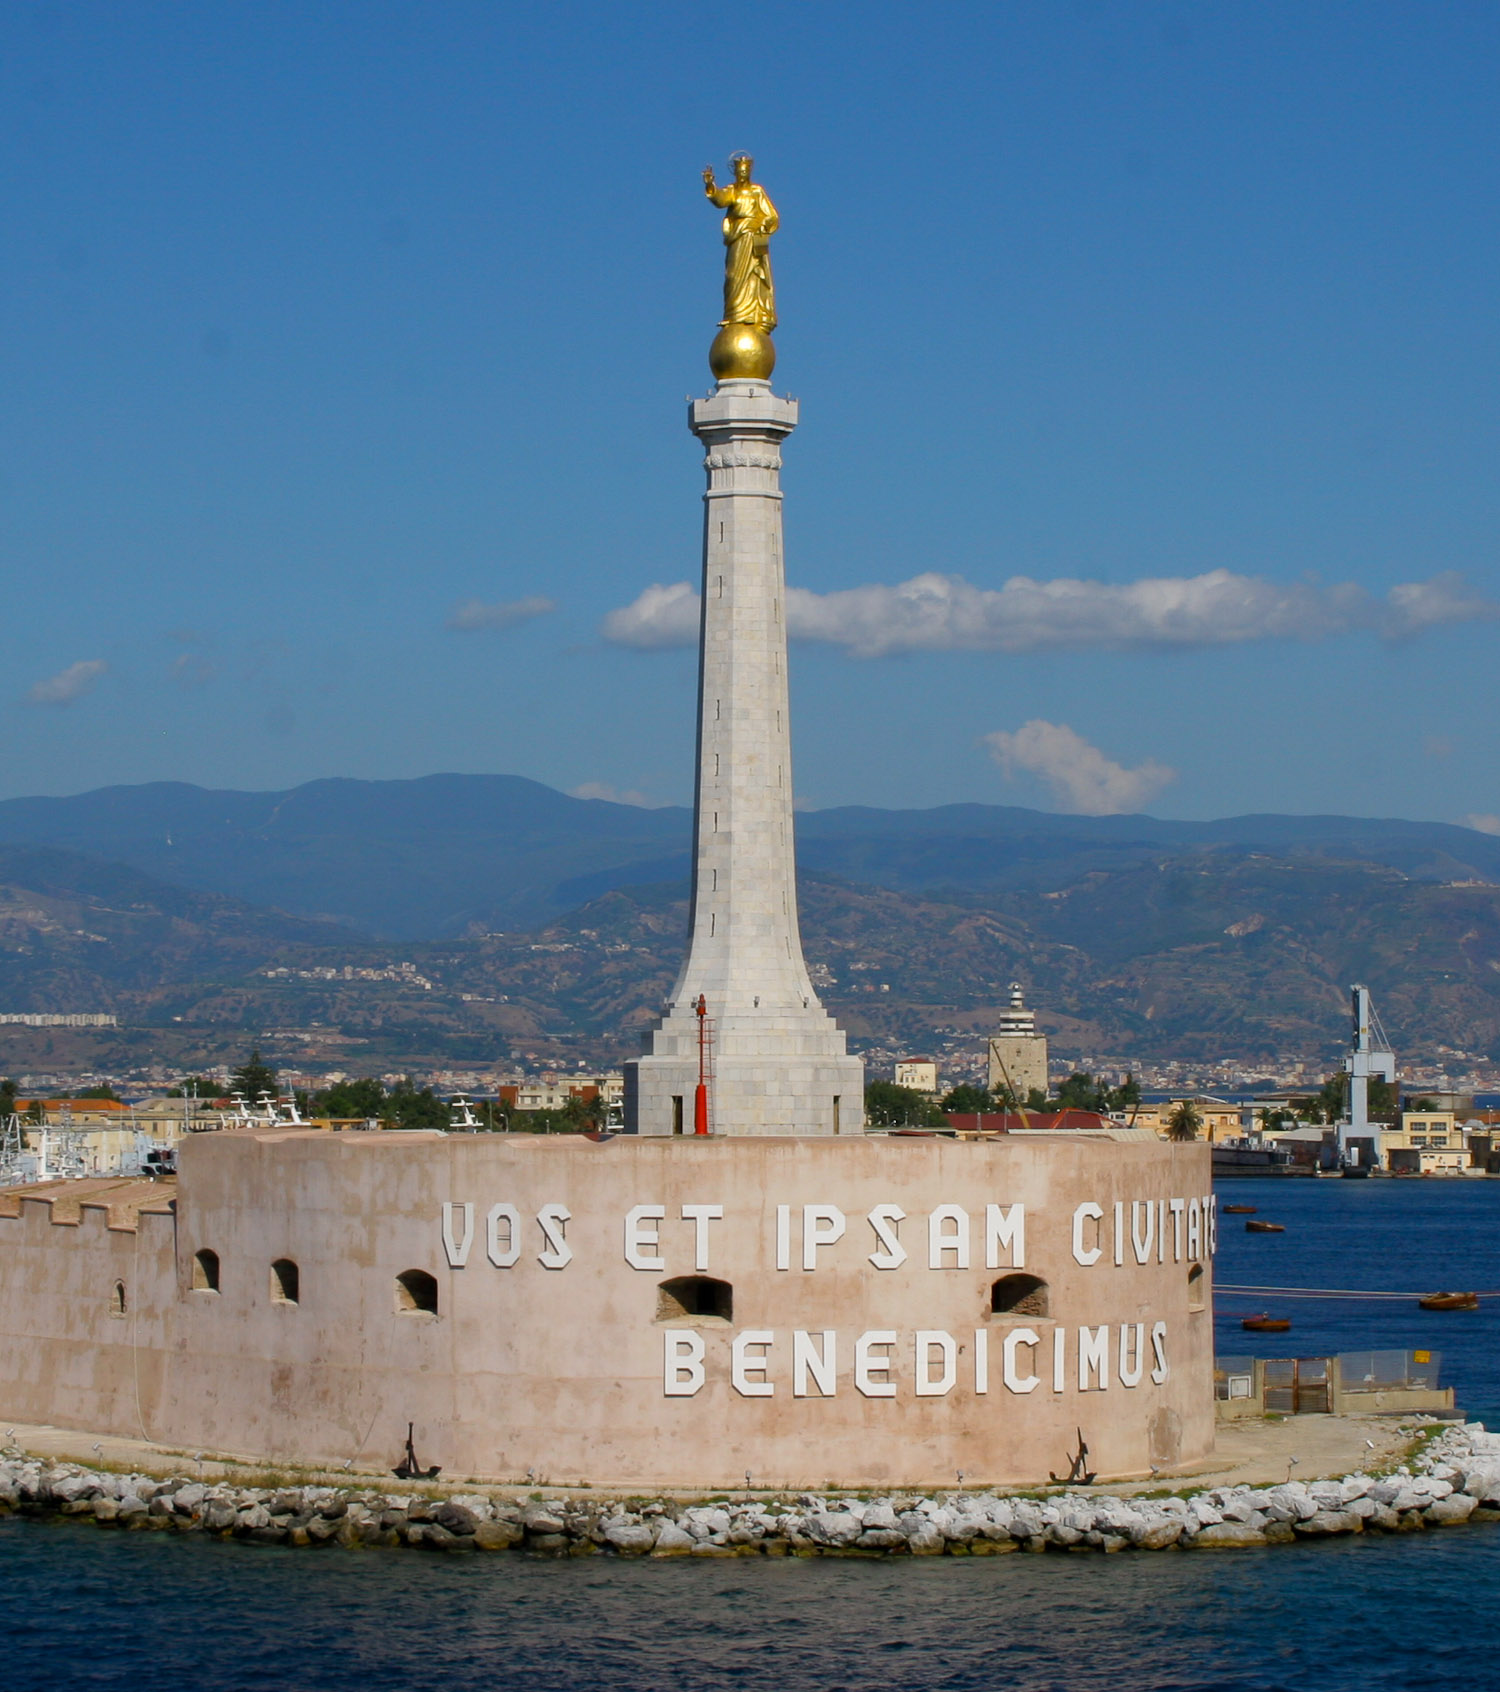 Messina Port and the blessing of the golden madonnina